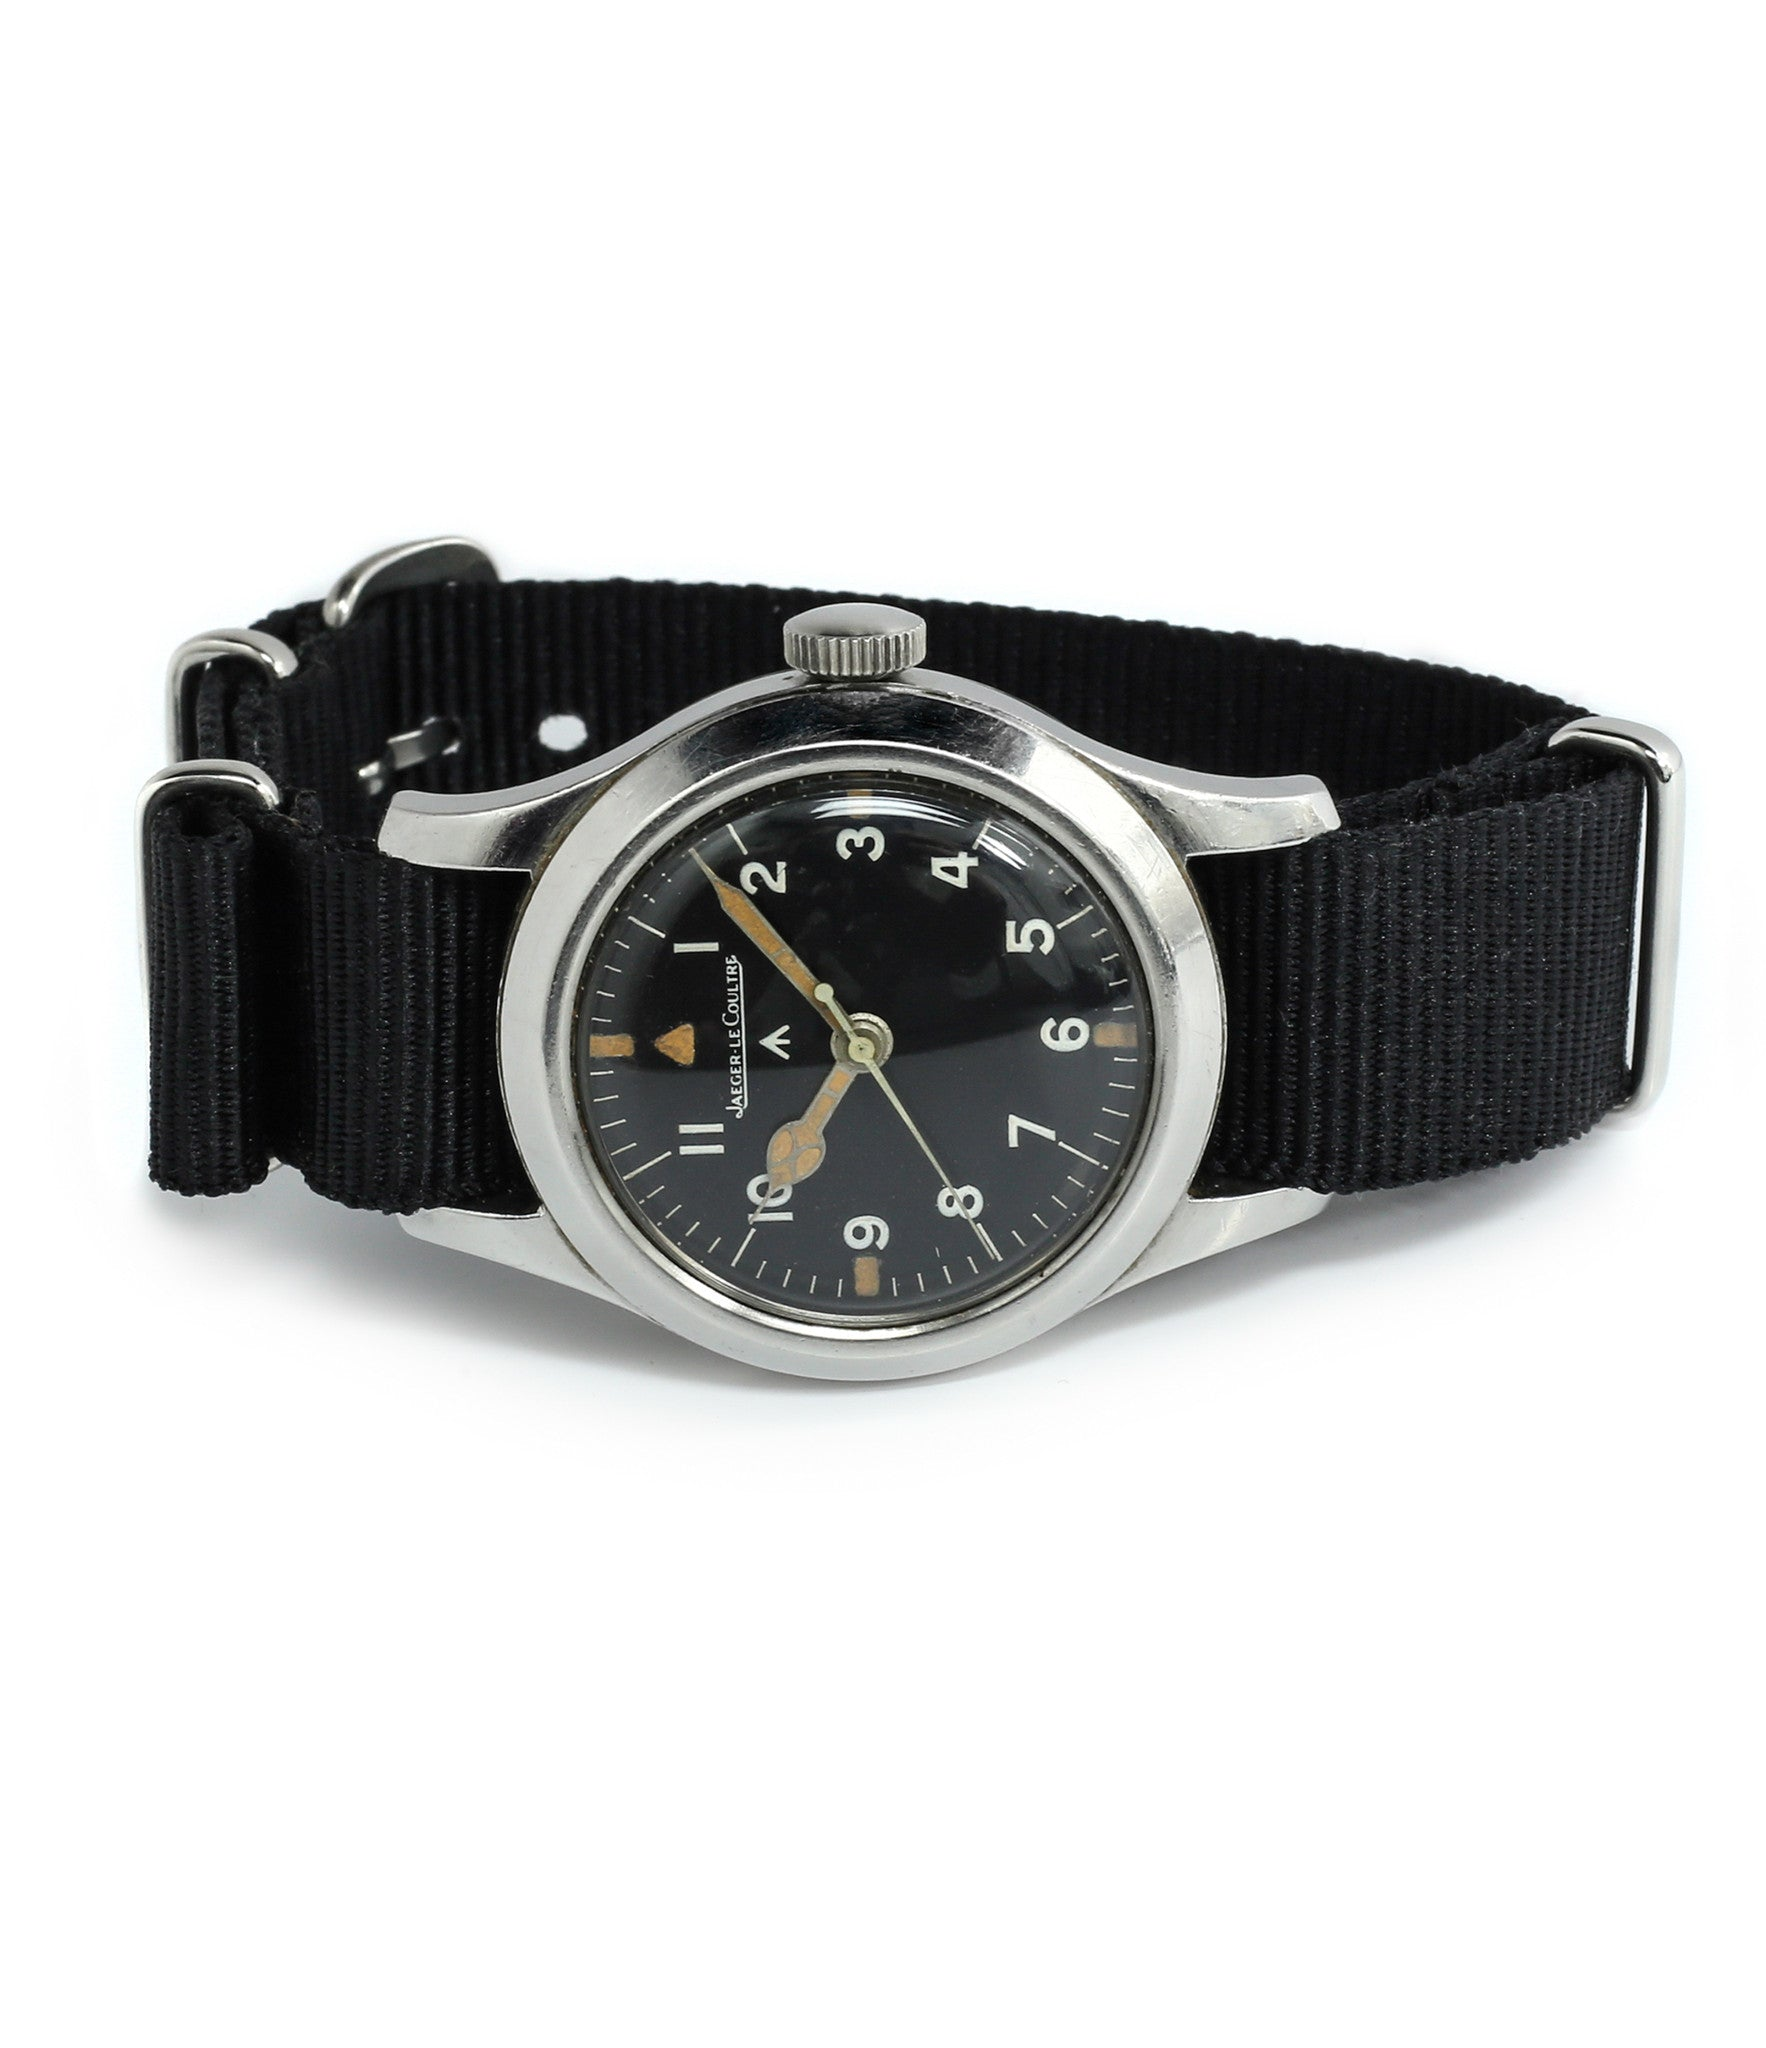 buy vintage Jaeger-LeCoultre Mark XI RAF military pilot watch 6B/346 unrestored dial cathedral hands at WATCH XCHANGE LONDON military watch online specialist